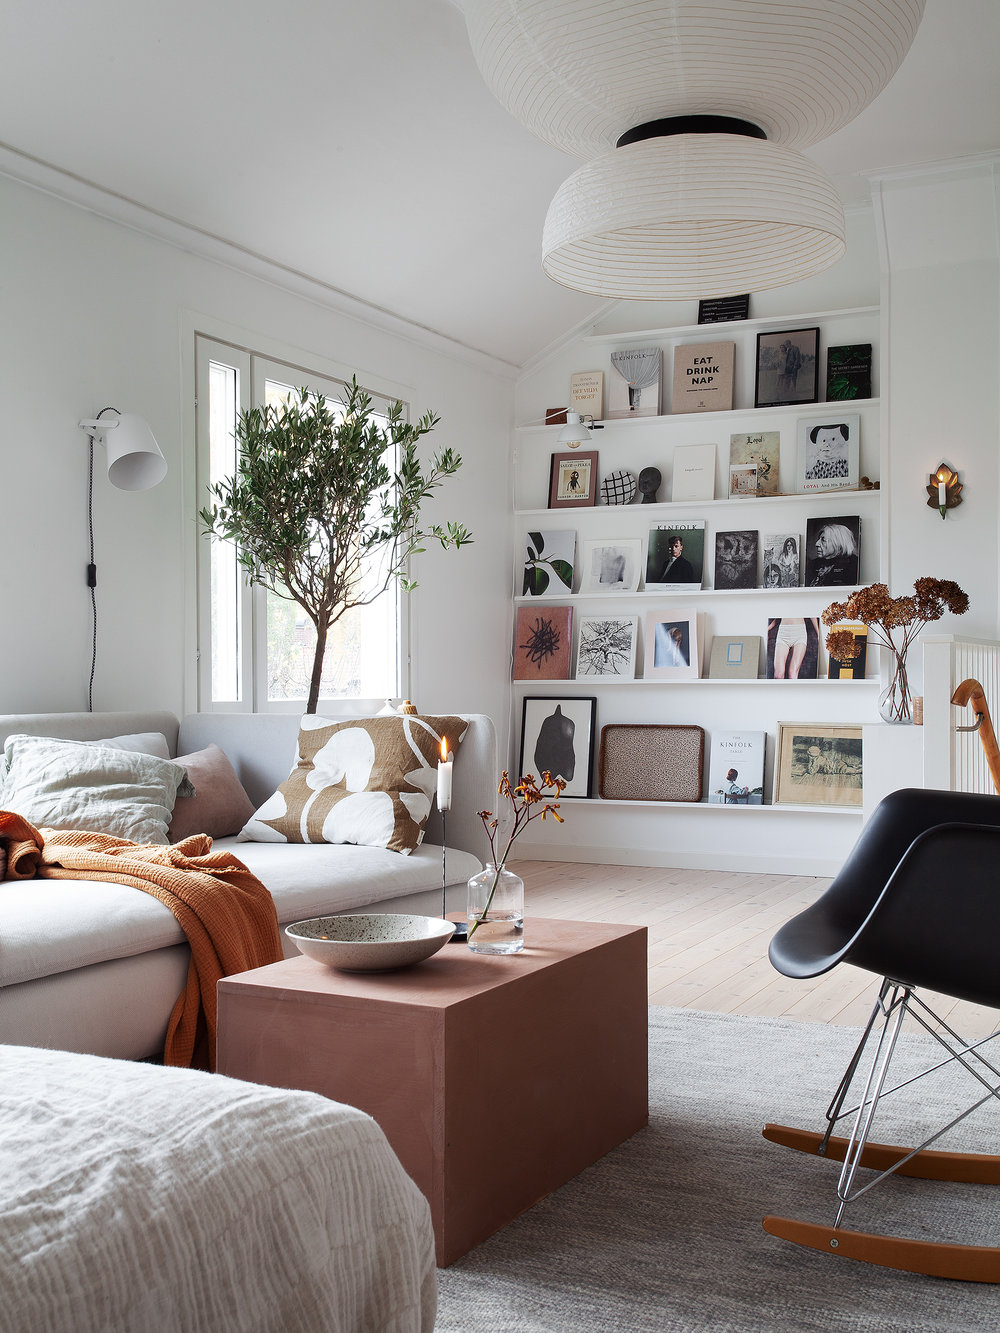 home tour of Swedish blogger Janniche Bergstrom @bloggaibagis